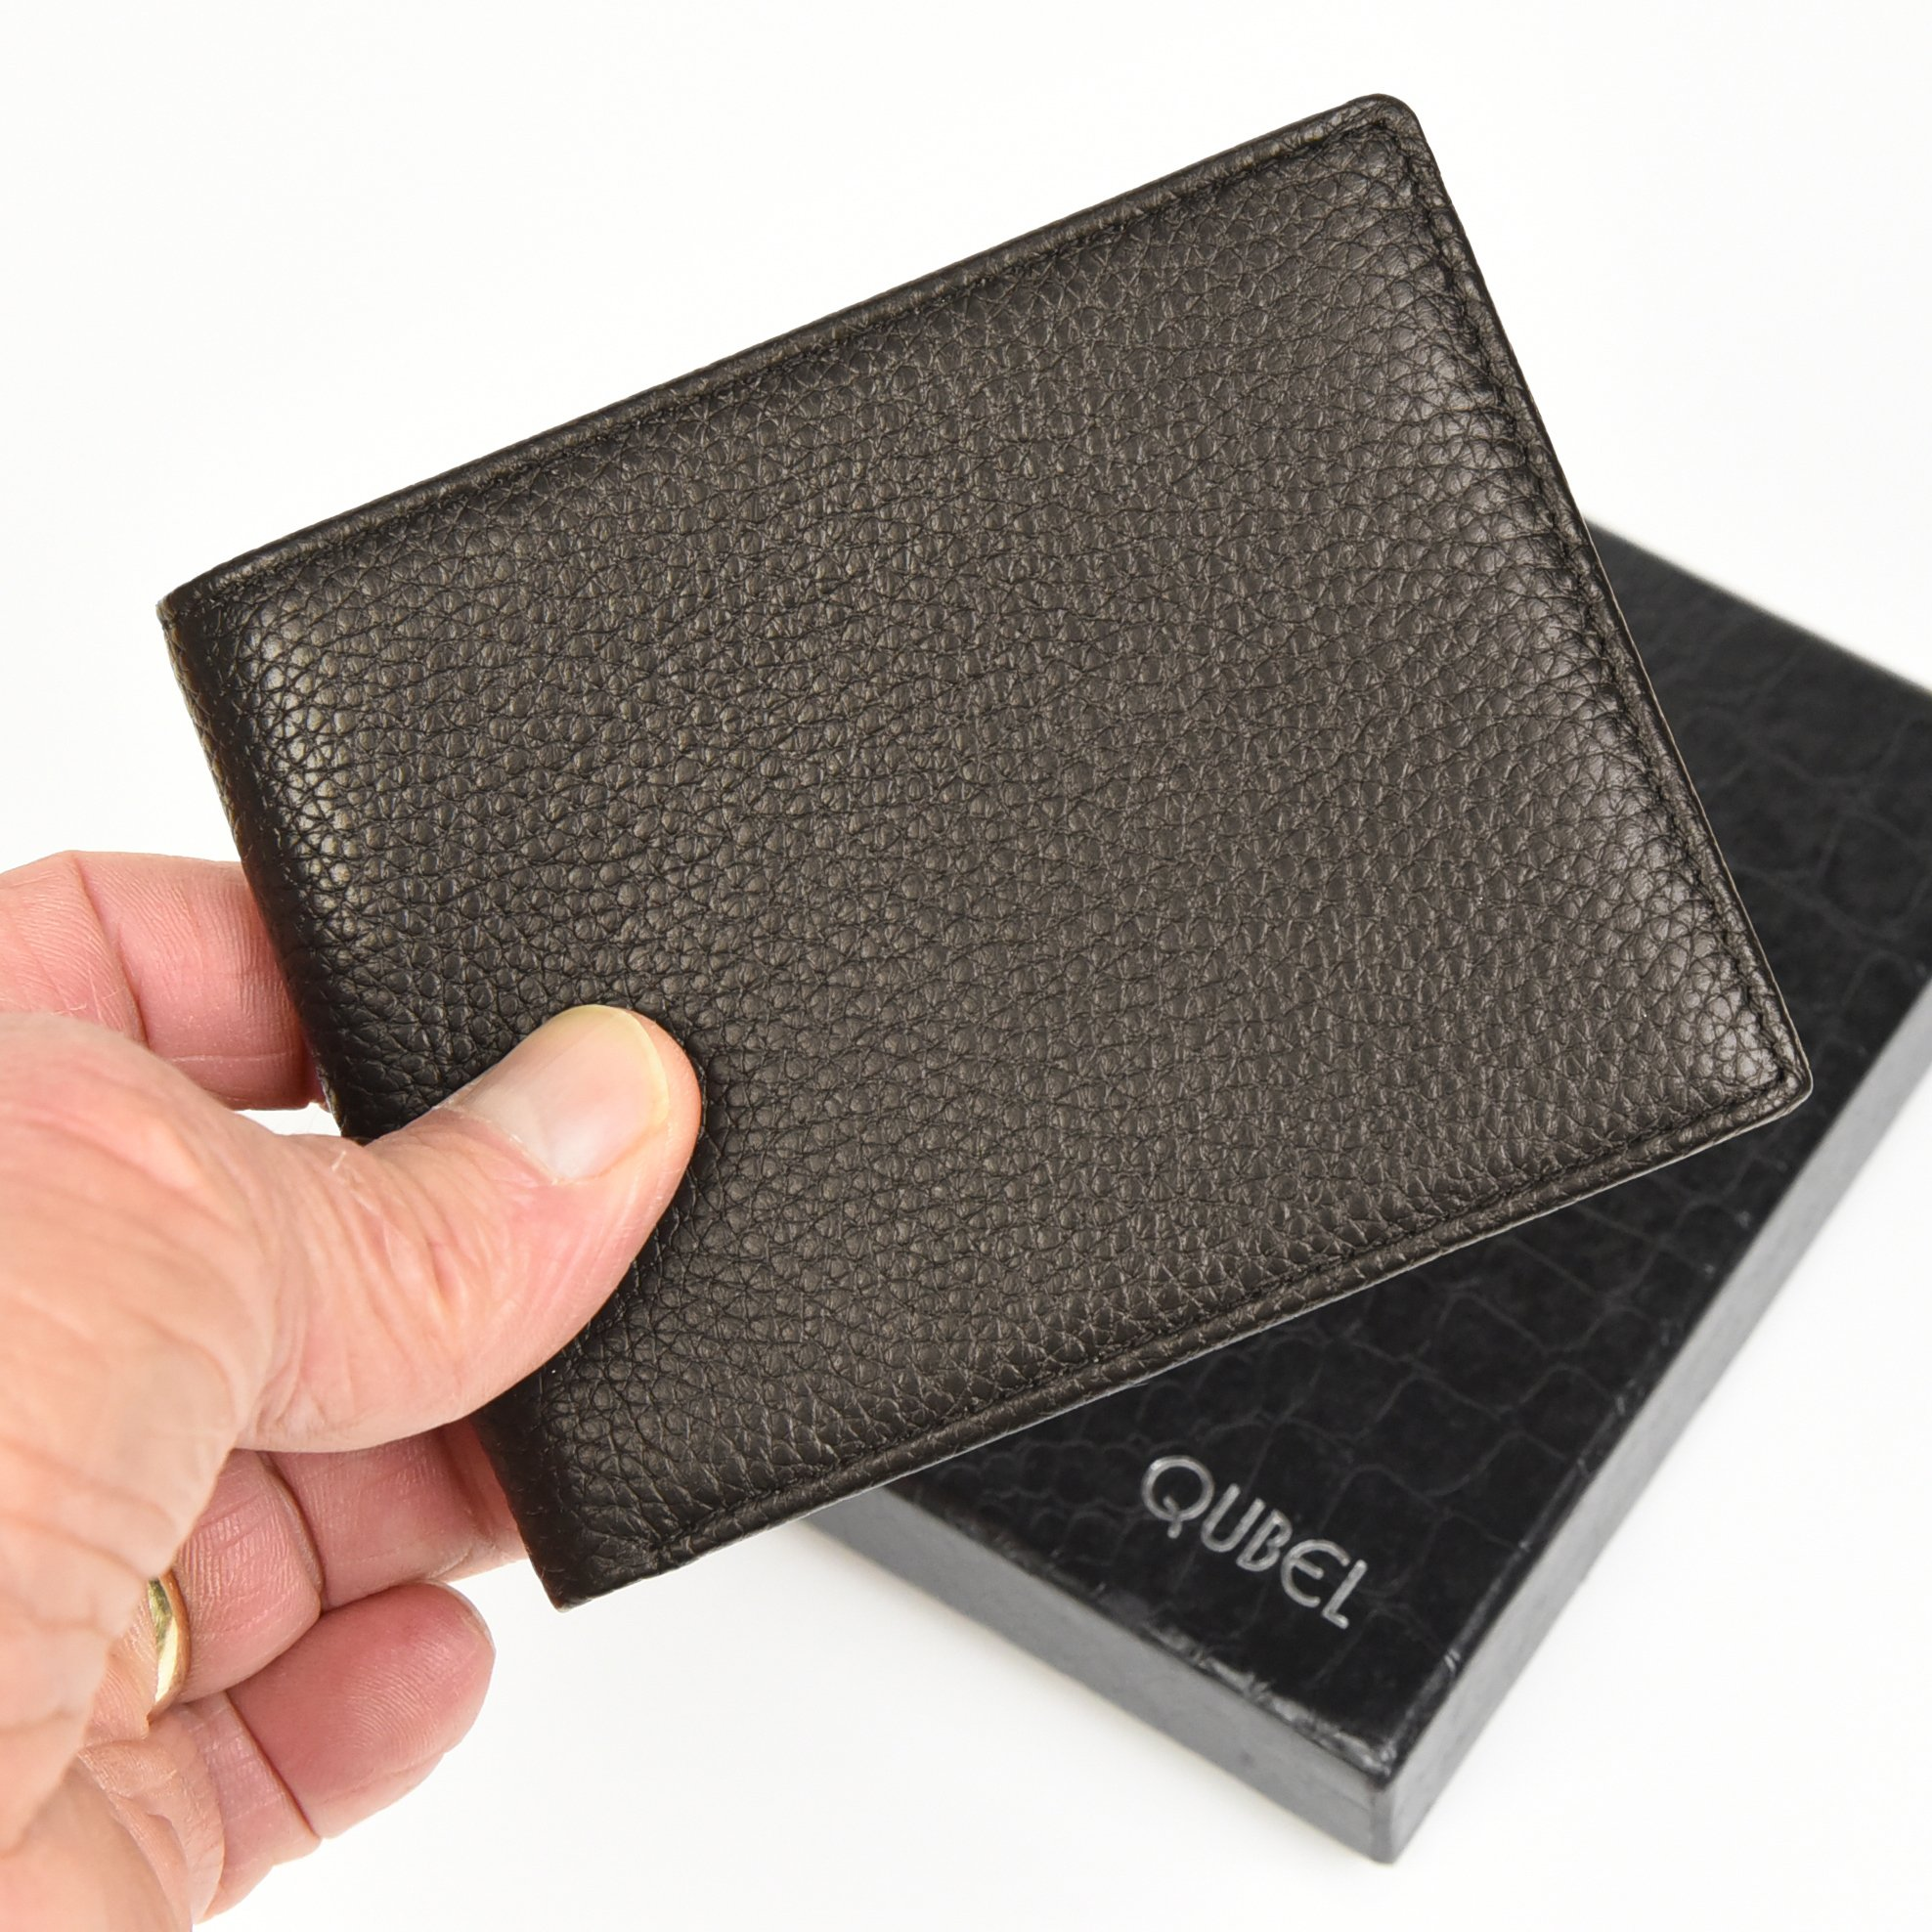 RFID Blocking Slim Bifold Genuine Leather Wallet for Men - Credit Card Protector by Qubel (Image #4)